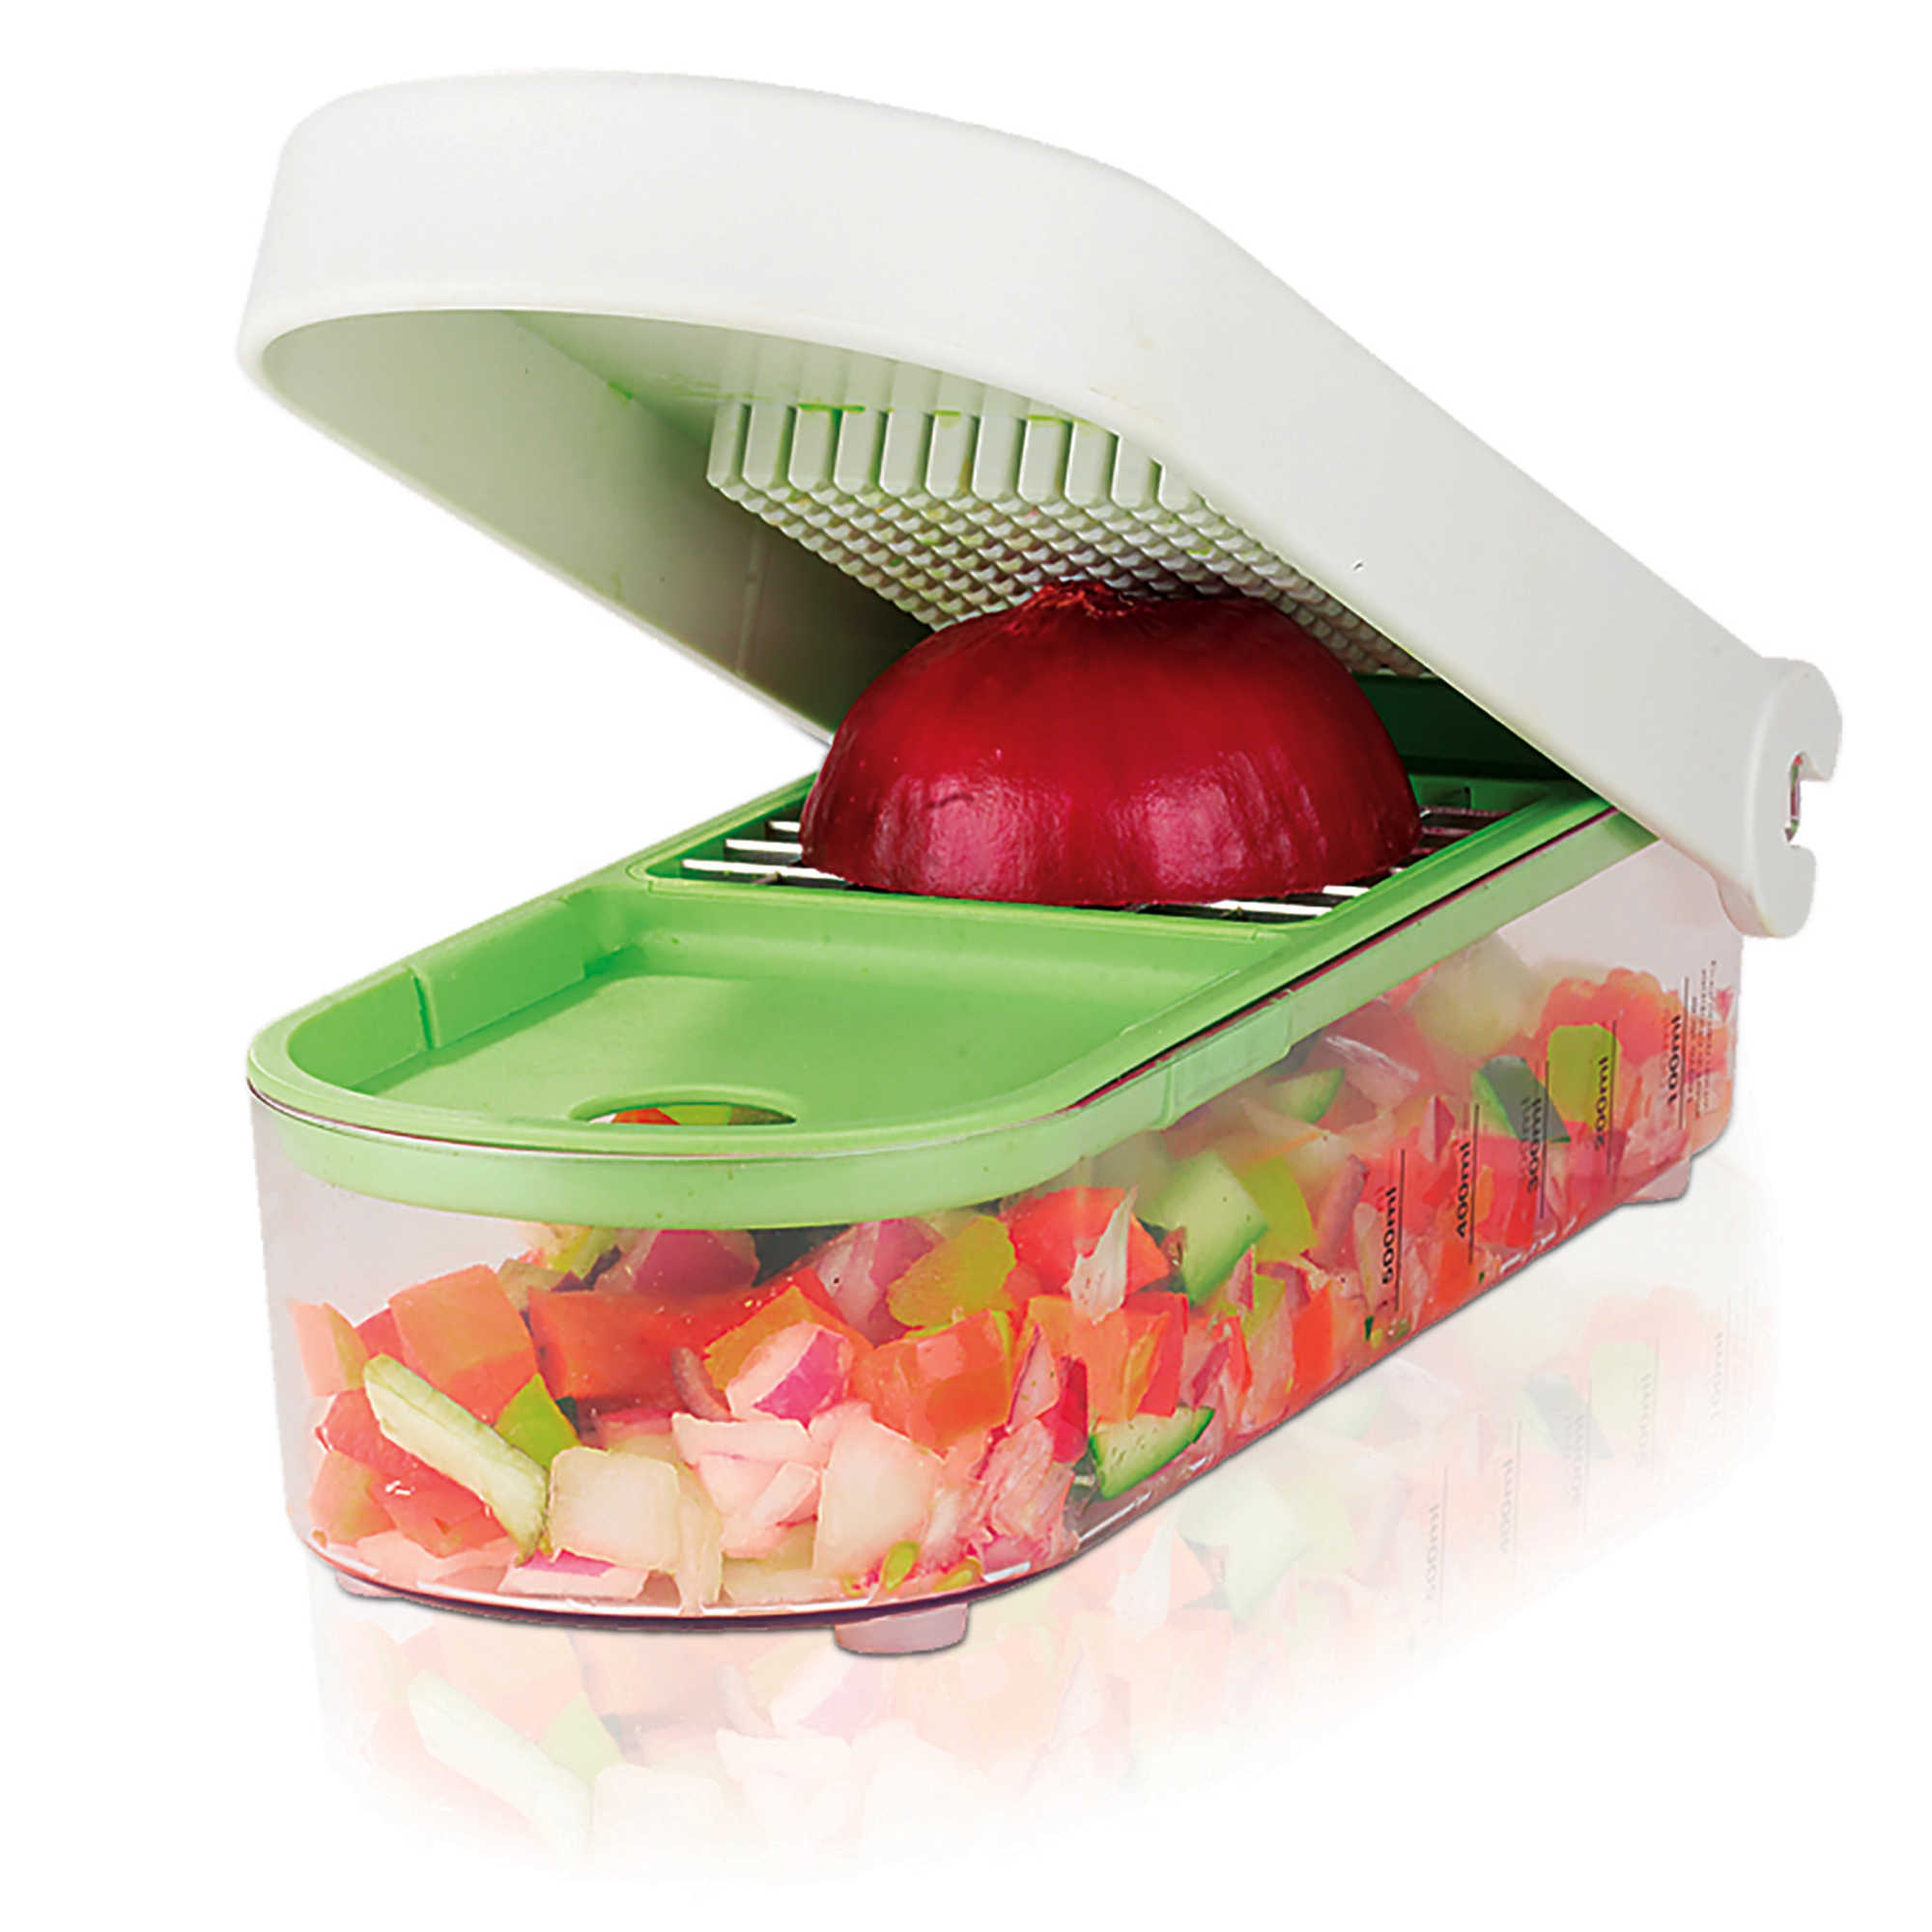 Best Vegetable Dicer The Accessories Tool In Each Family